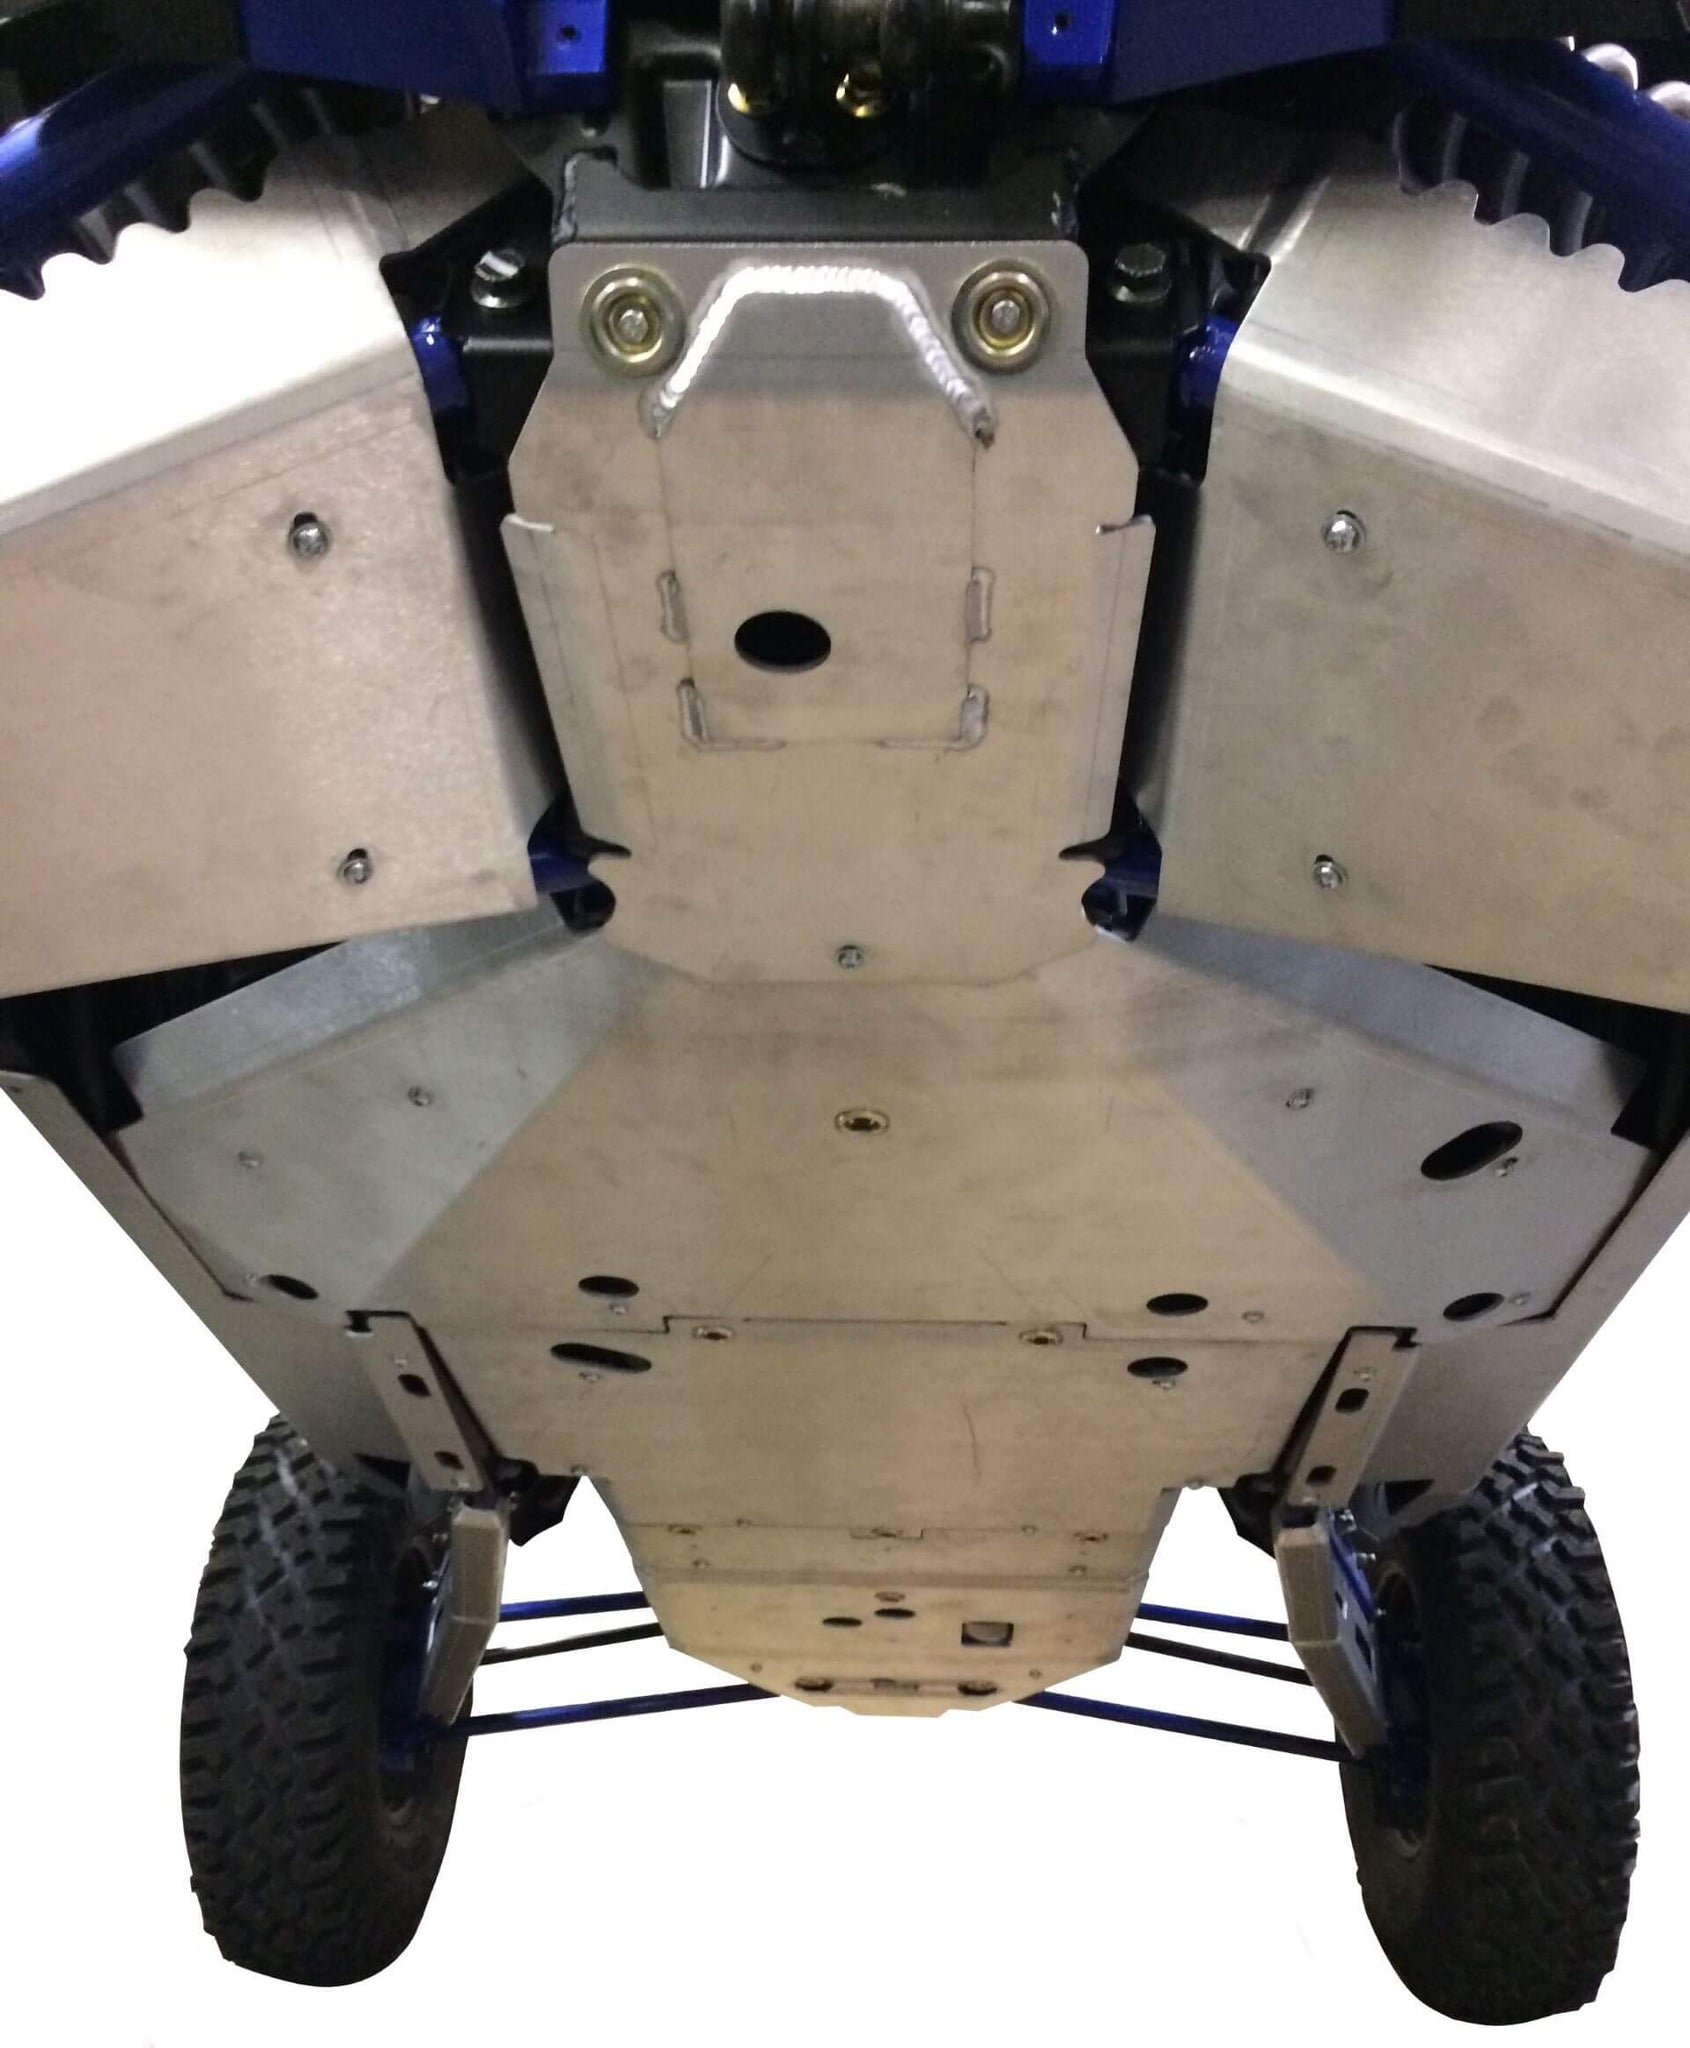 10-Piece Complete Aluminum or UHMW Skid Plate Set, Polaris RZR XP Turbo S